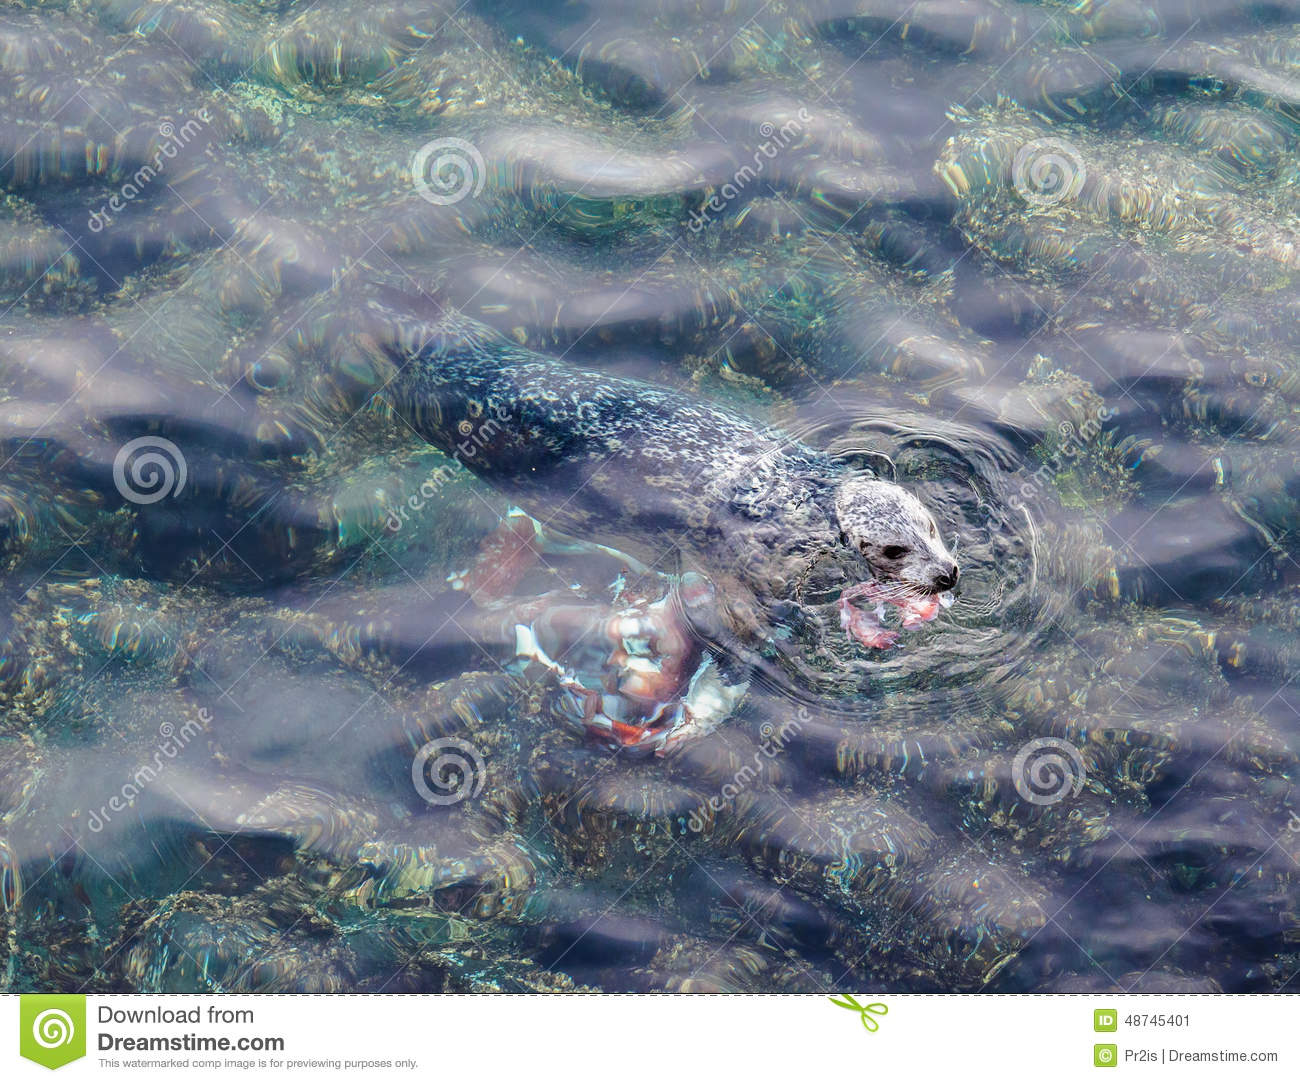 Seal Eating Giant Pacific Octopus Stock Image - Image of ... - photo#22